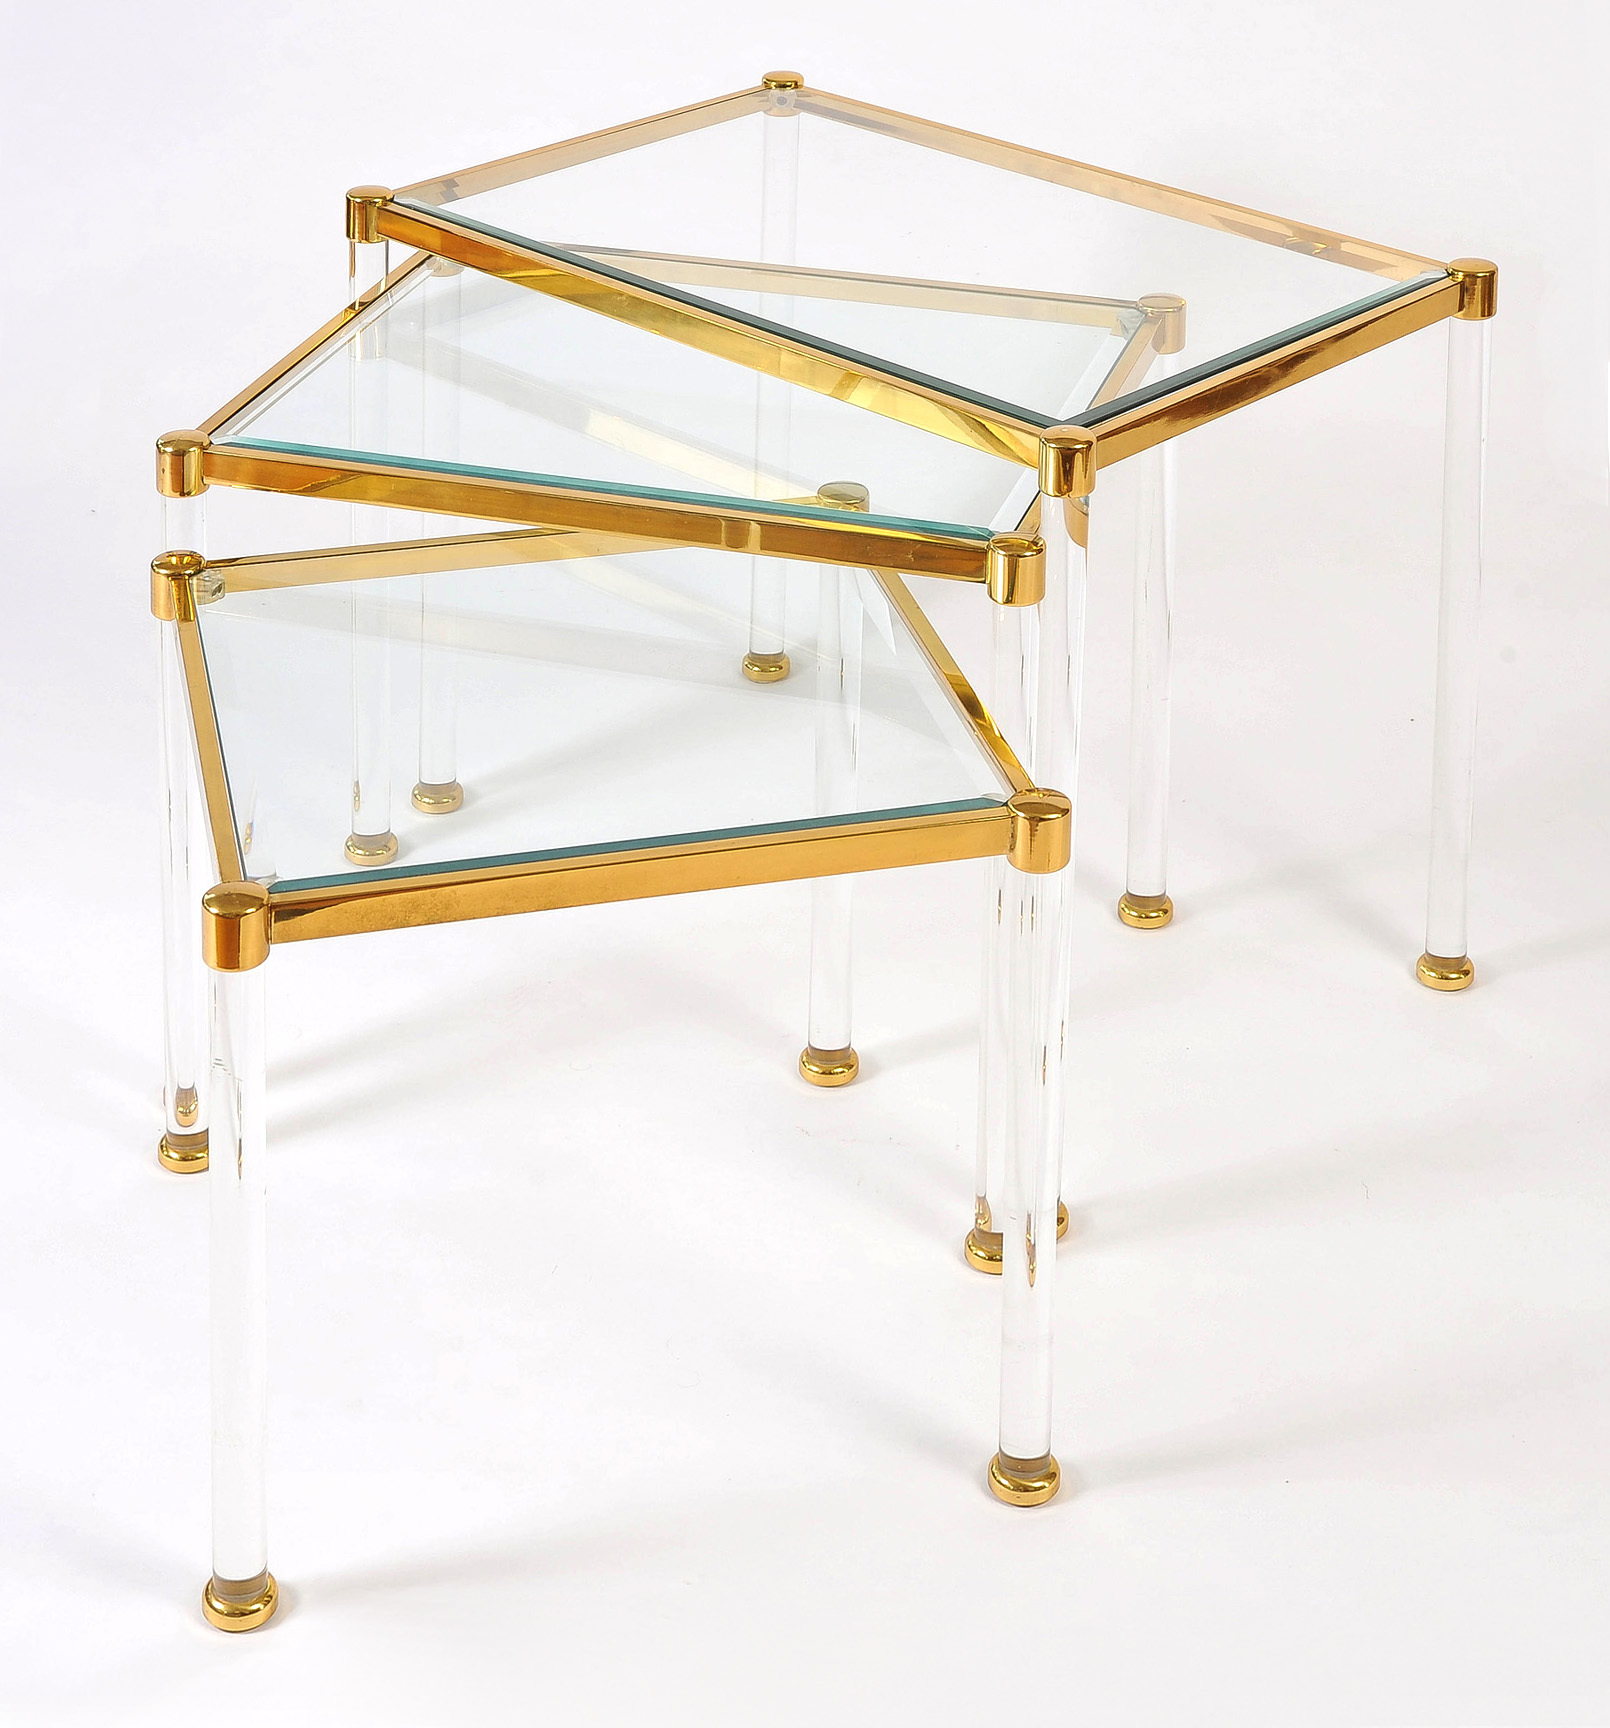 The image for Nesting Tables 03